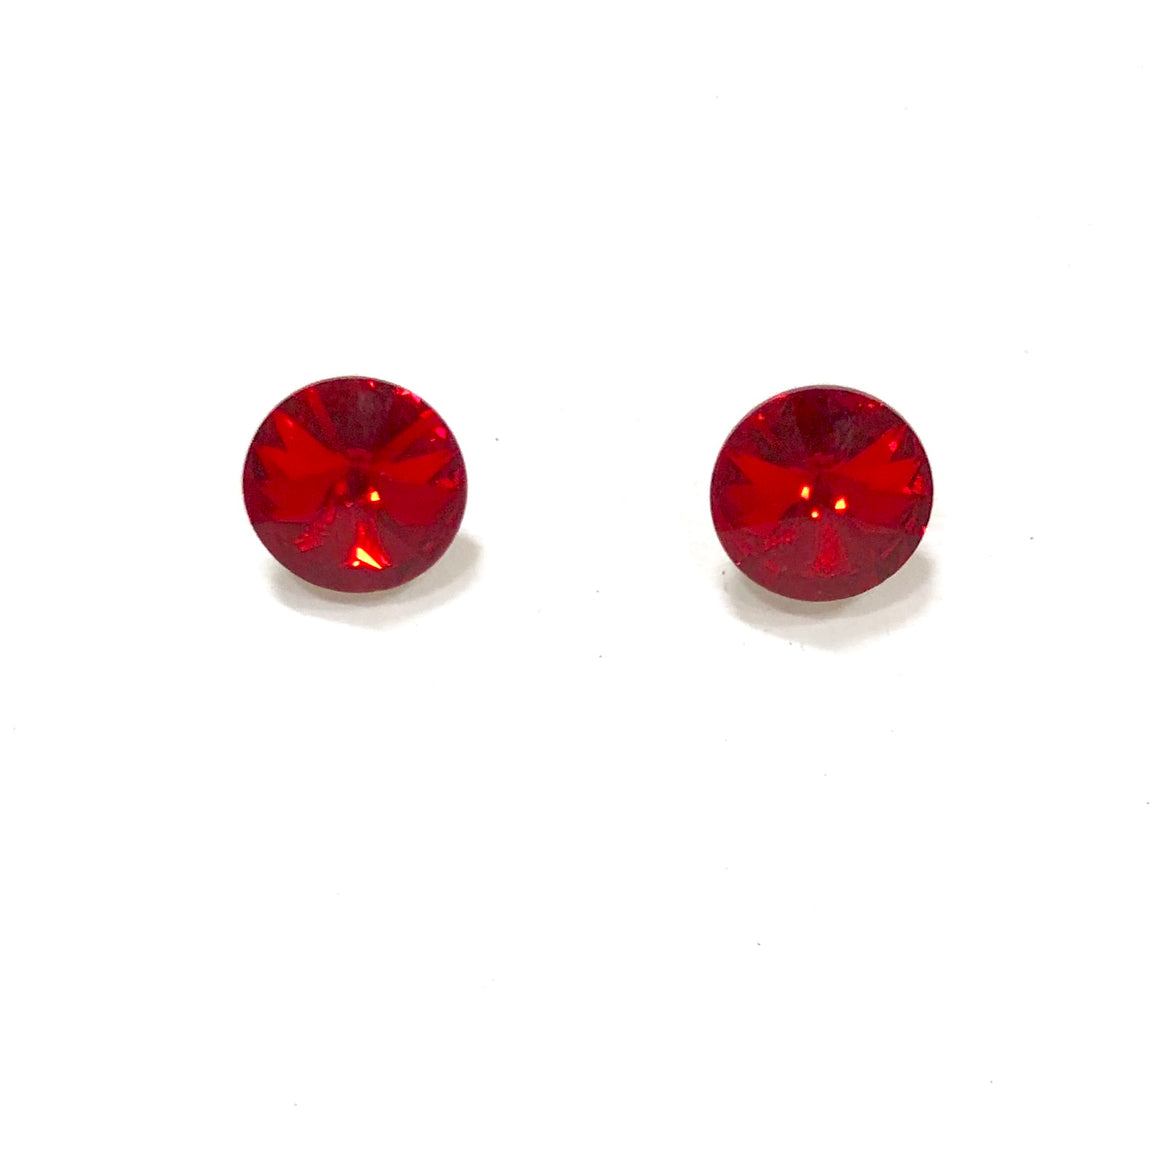 Irresistible Iridescent Stud Earring in Red